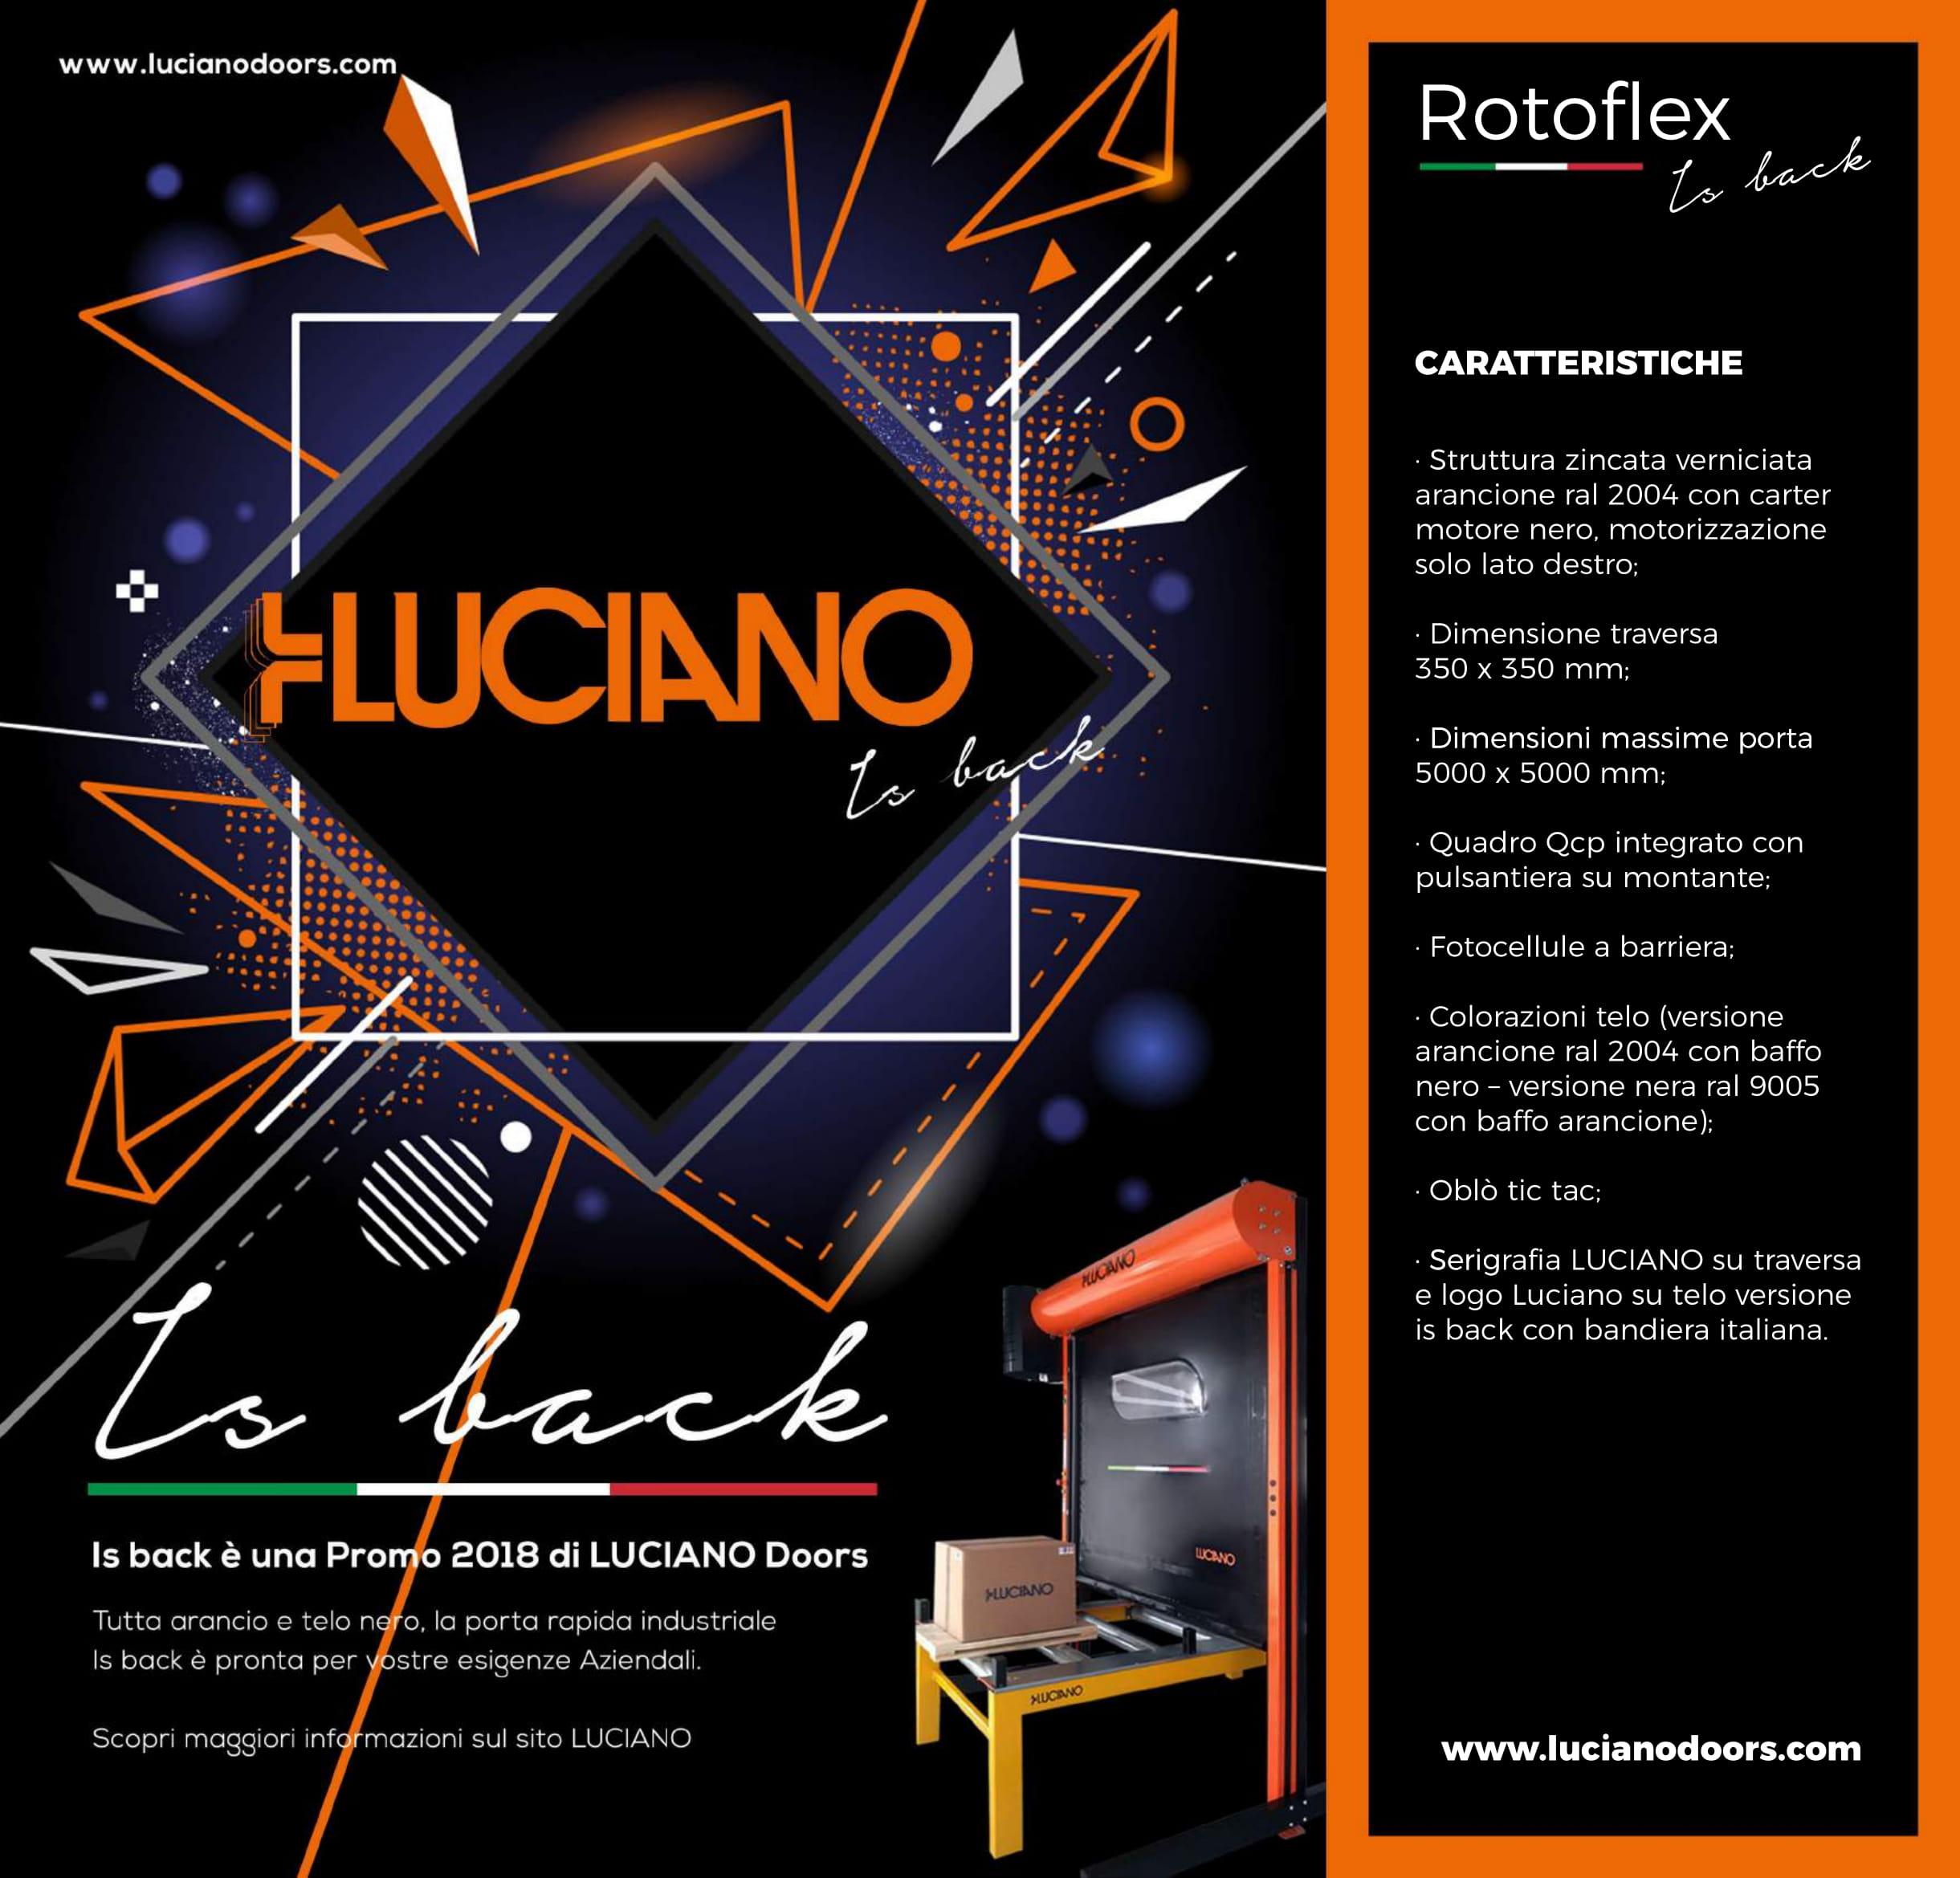 Is back_LUCIANO DOORS_PROMO 2018_ROTOFLEX